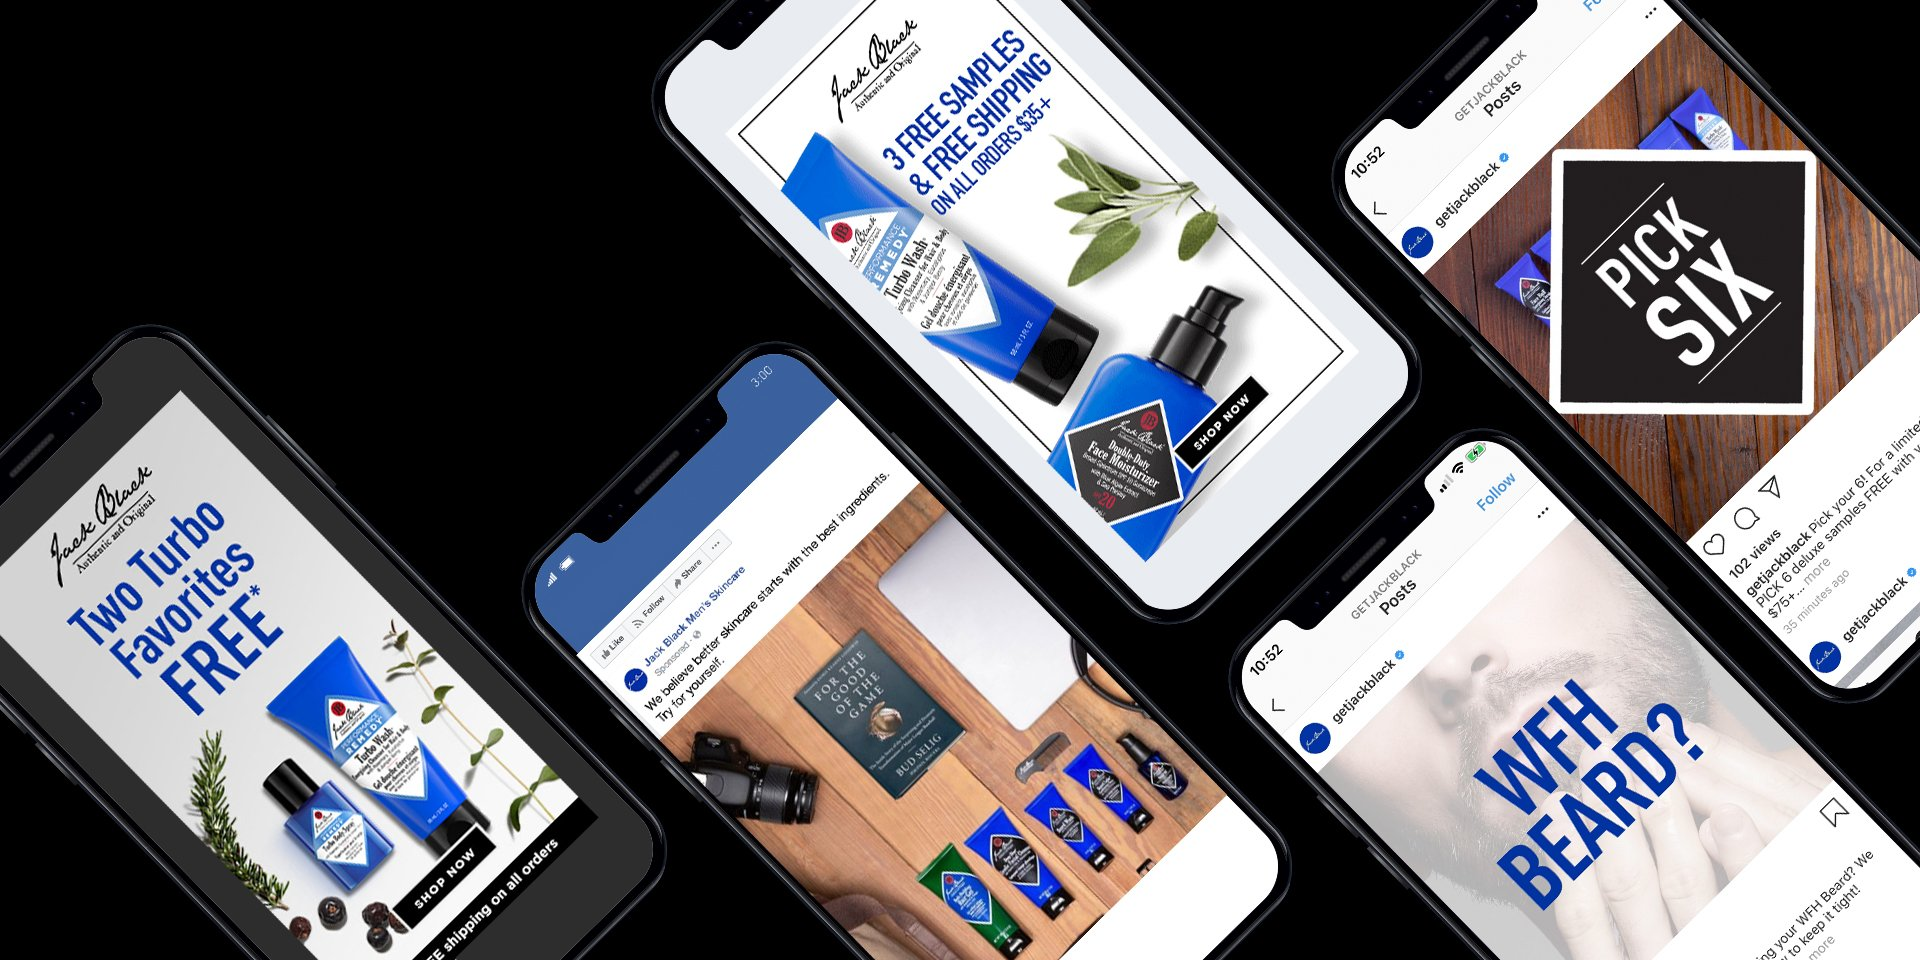 flat lay of phones with jack black skincare ads on them